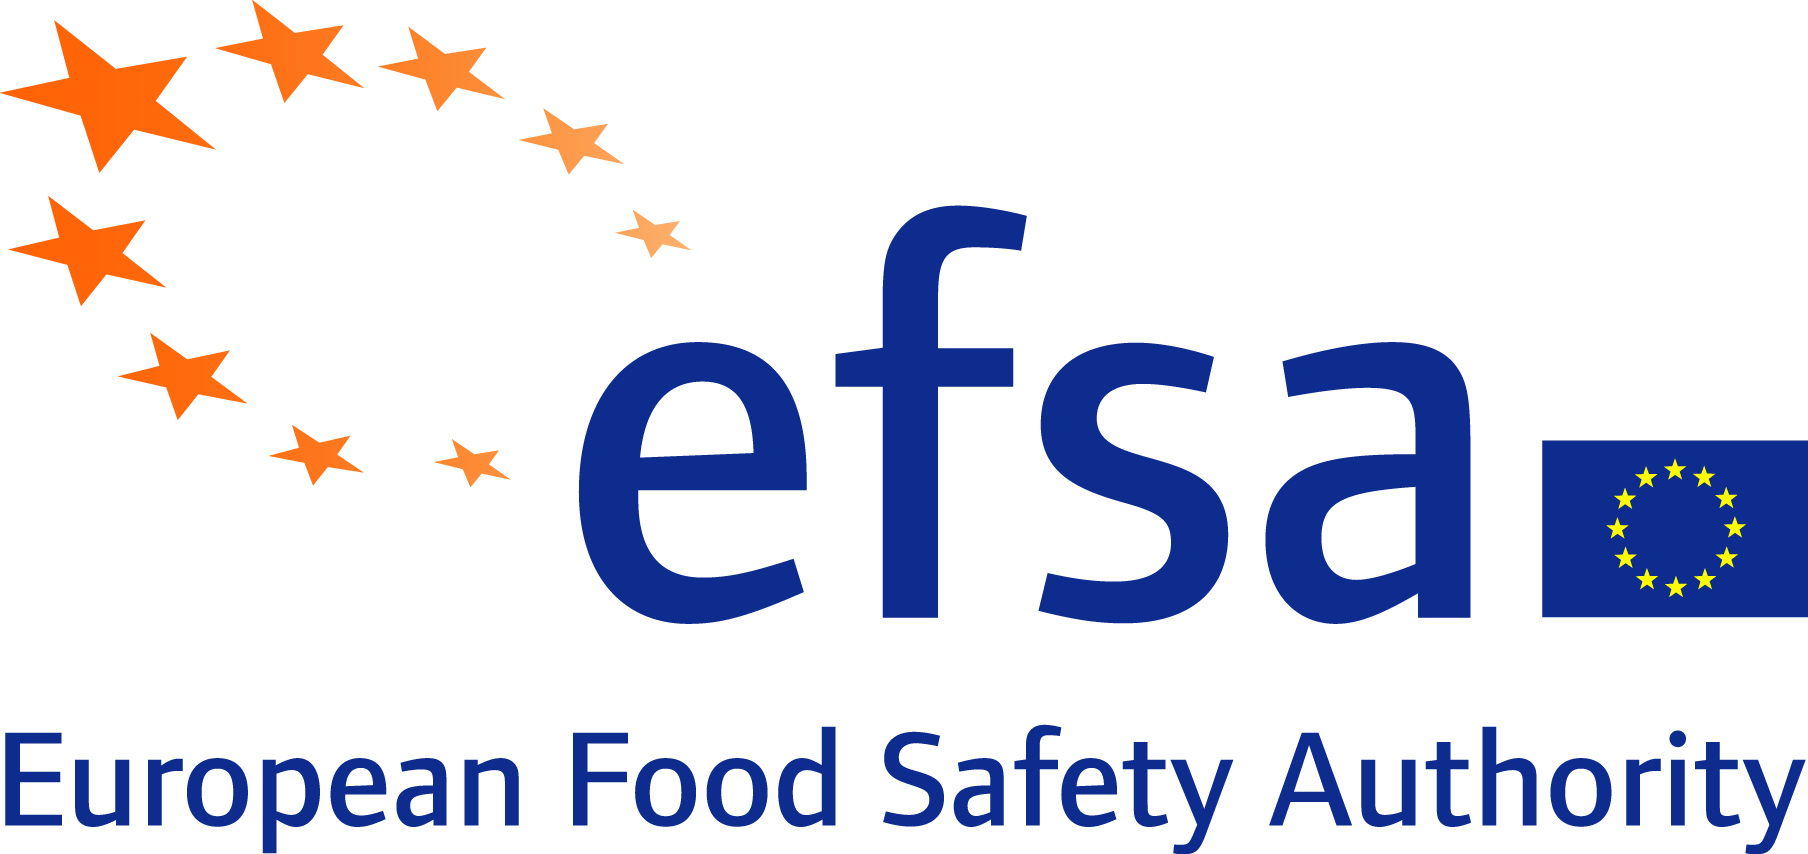 European Food Safety Authority | Trusted science for safe food